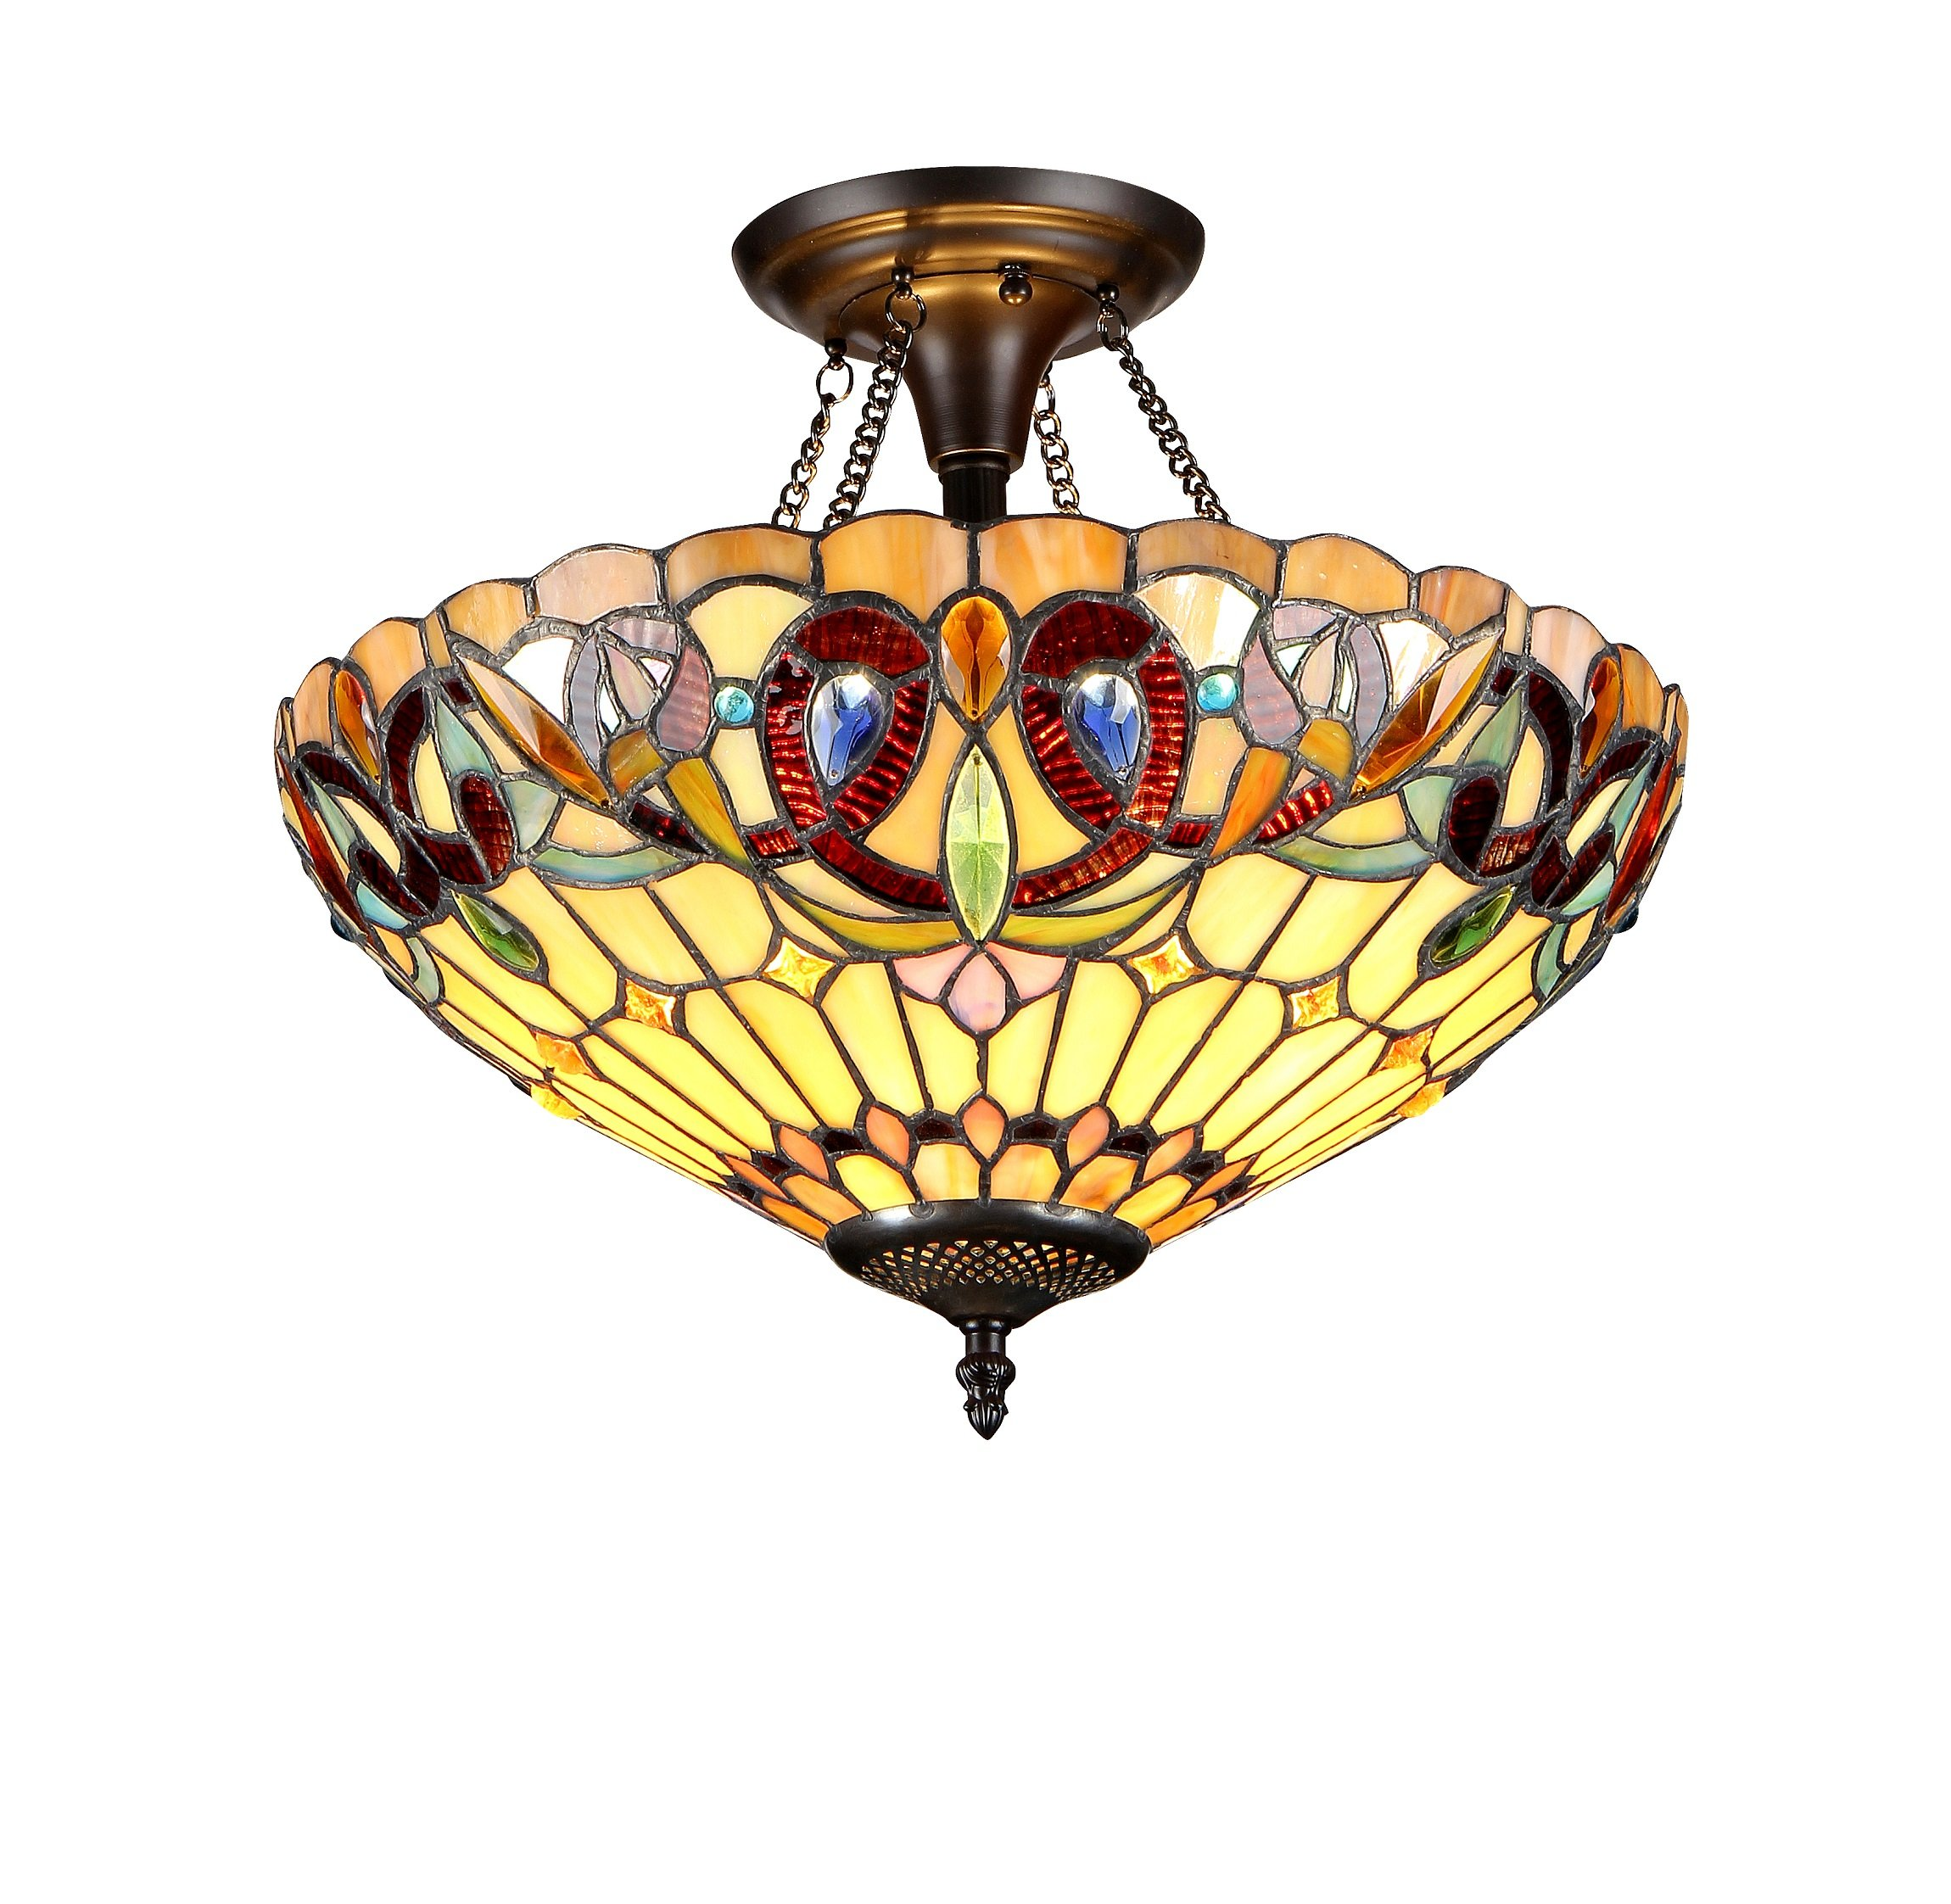 Chloe Lighting Chloe Lighting Serenity 2-Light Tiffany Style Victorian Semi Flush Ceiling Fixture with 16 in. Shade by Chloe Lighting